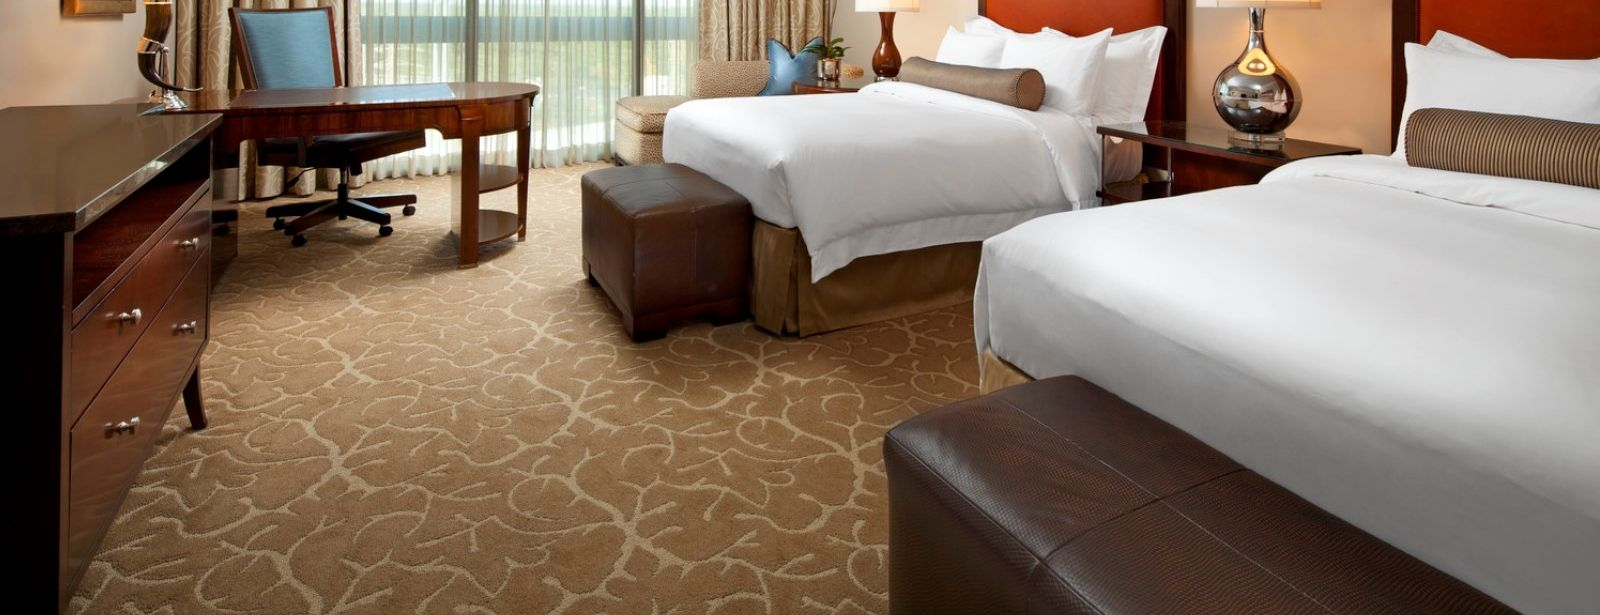 Astor Deluxe Guest Room - Luxury Hotels in Houston - The St. Regis Houston Hotel